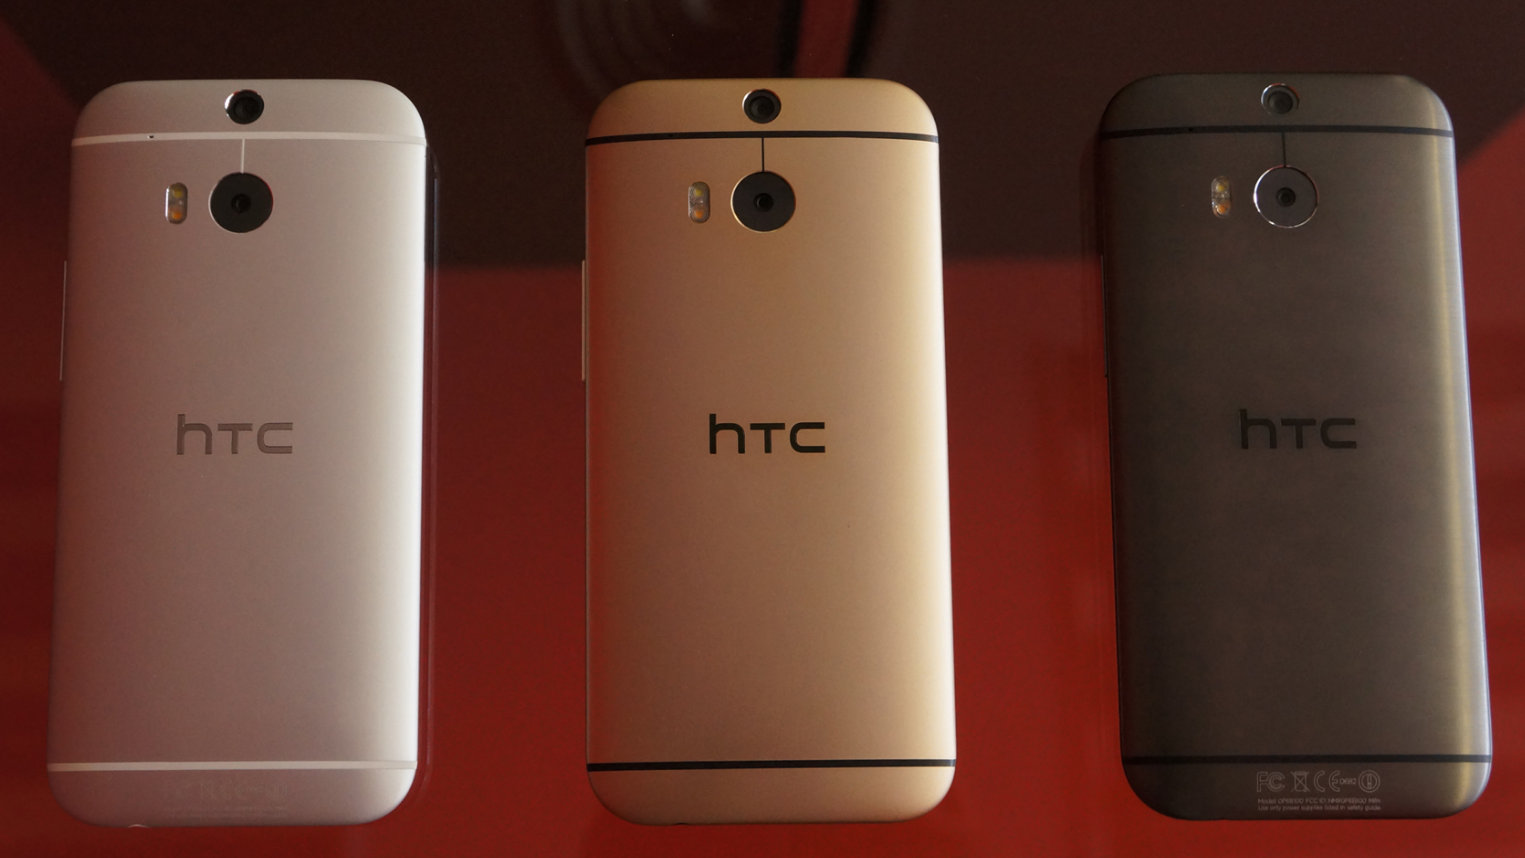 HTC One colores (4)